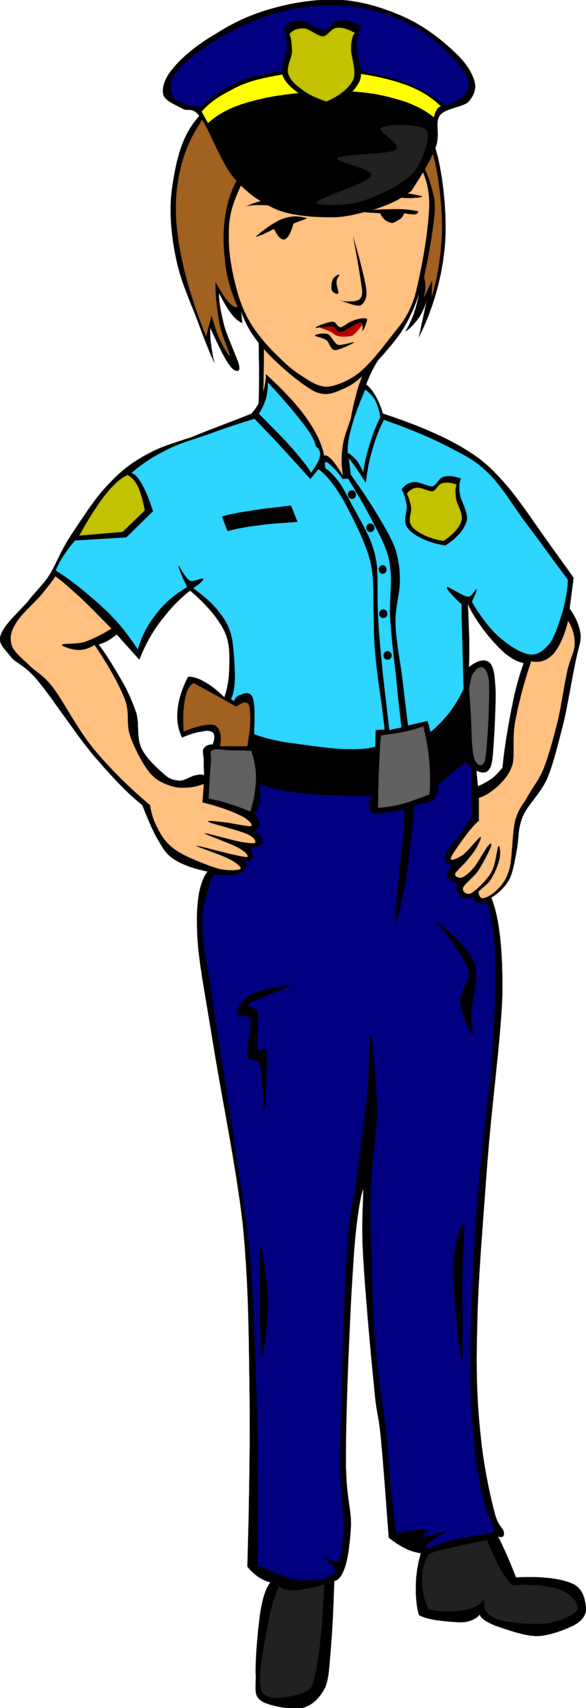 School uniform clipart picture free stock Police Officer Clipart | Clipart Panda - Free Clipart Images picture free stock